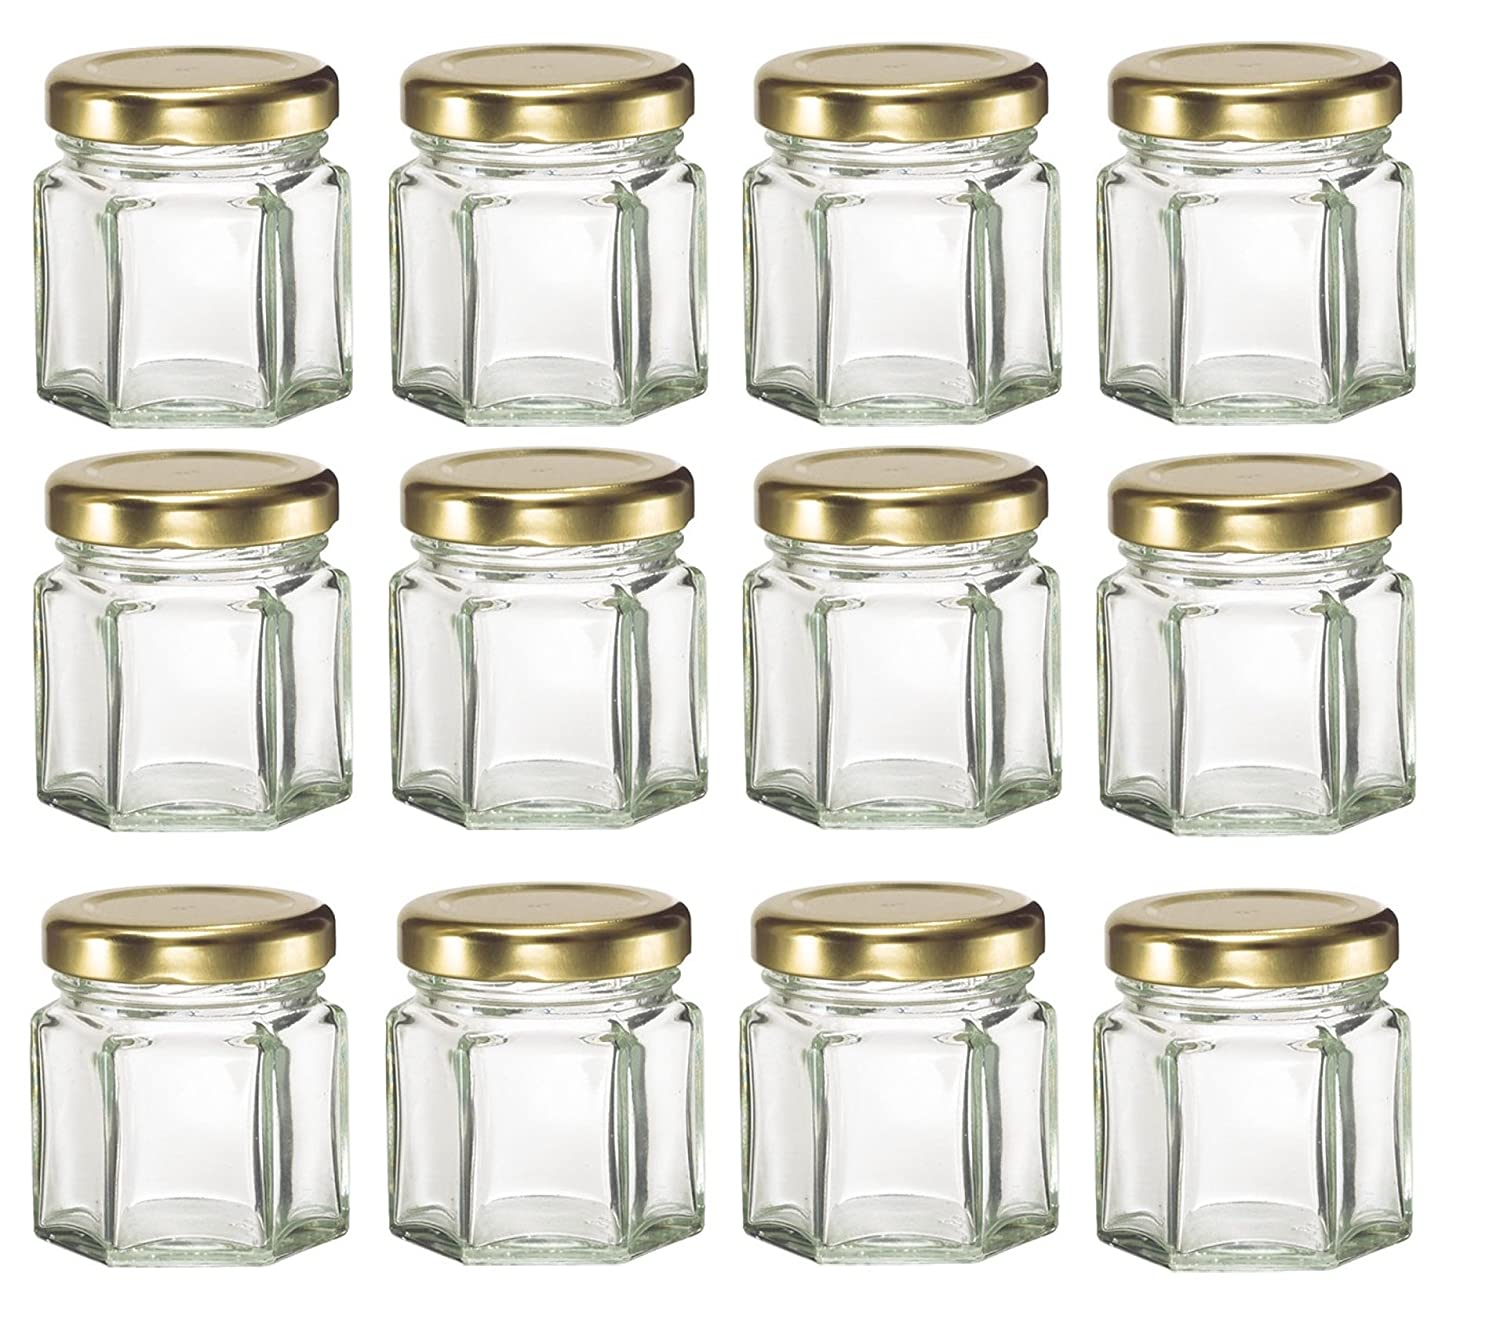 Amazon.com: Nakpunar 12 pcs, 1.5 oz Mini Hexagon Glass Jars with ...